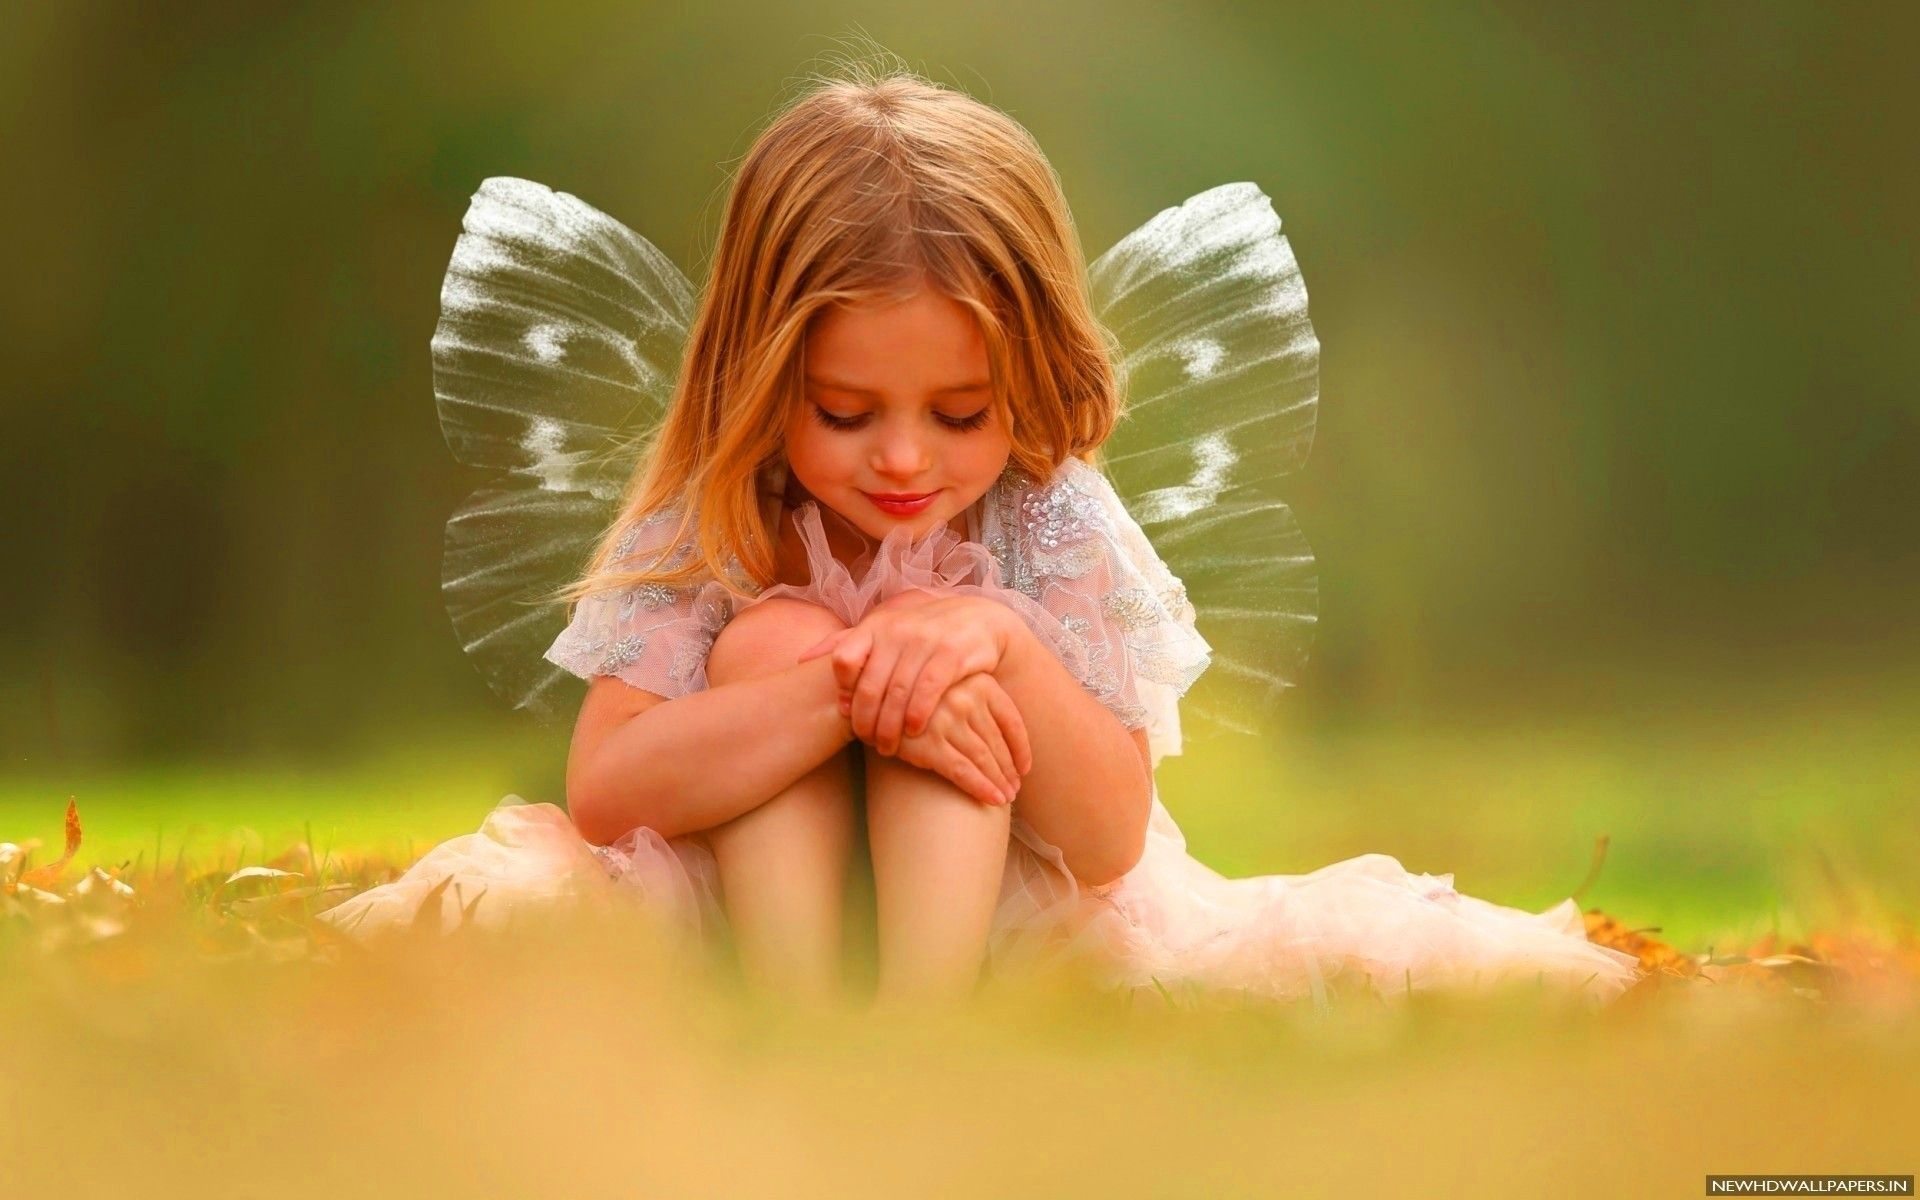 Cute Baby Girl Pictures Wallpapers (67+ images)